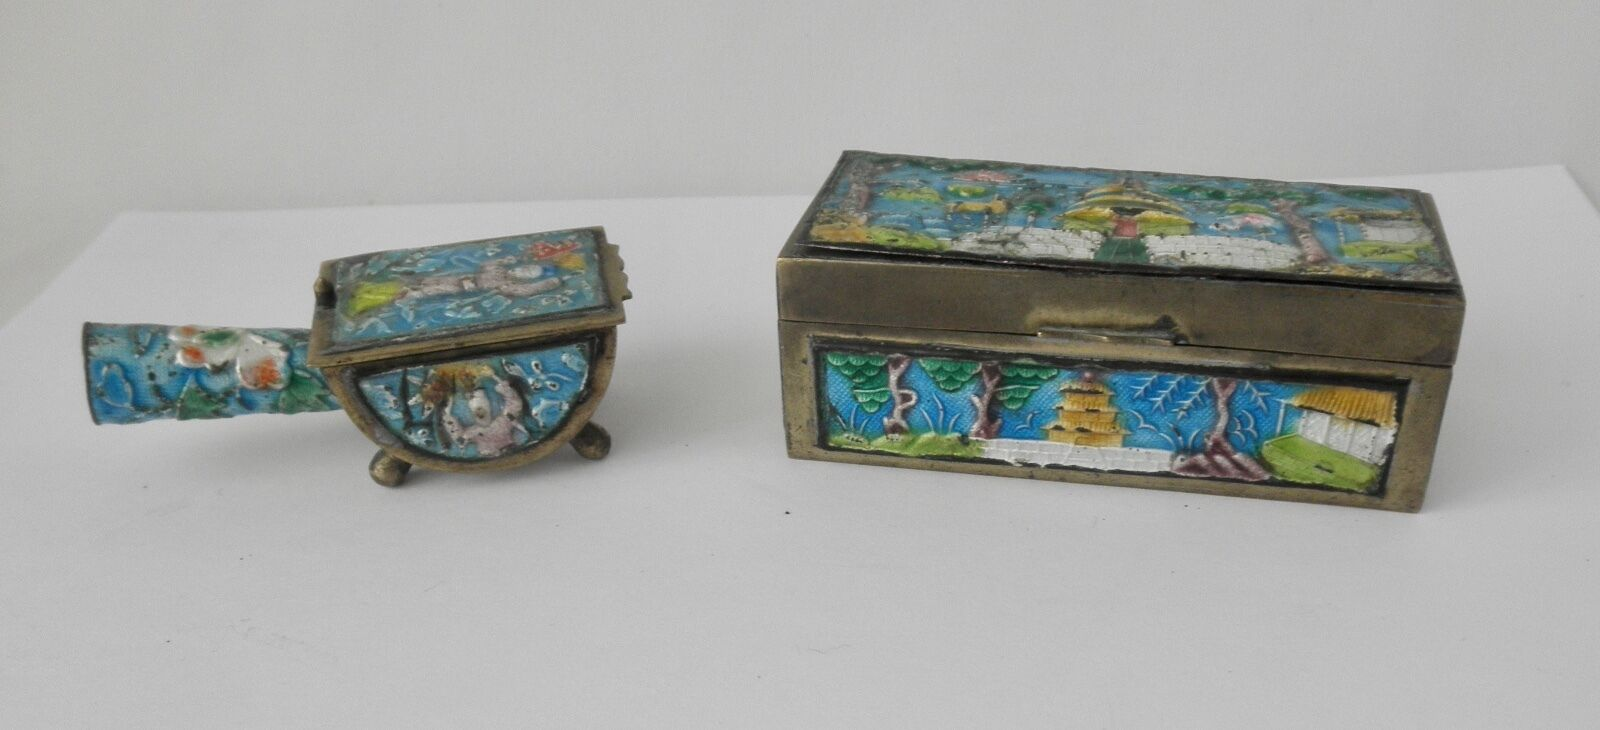 Two Antique Desk Set Items From China Enamel Over Brass 1 Of 4only Available